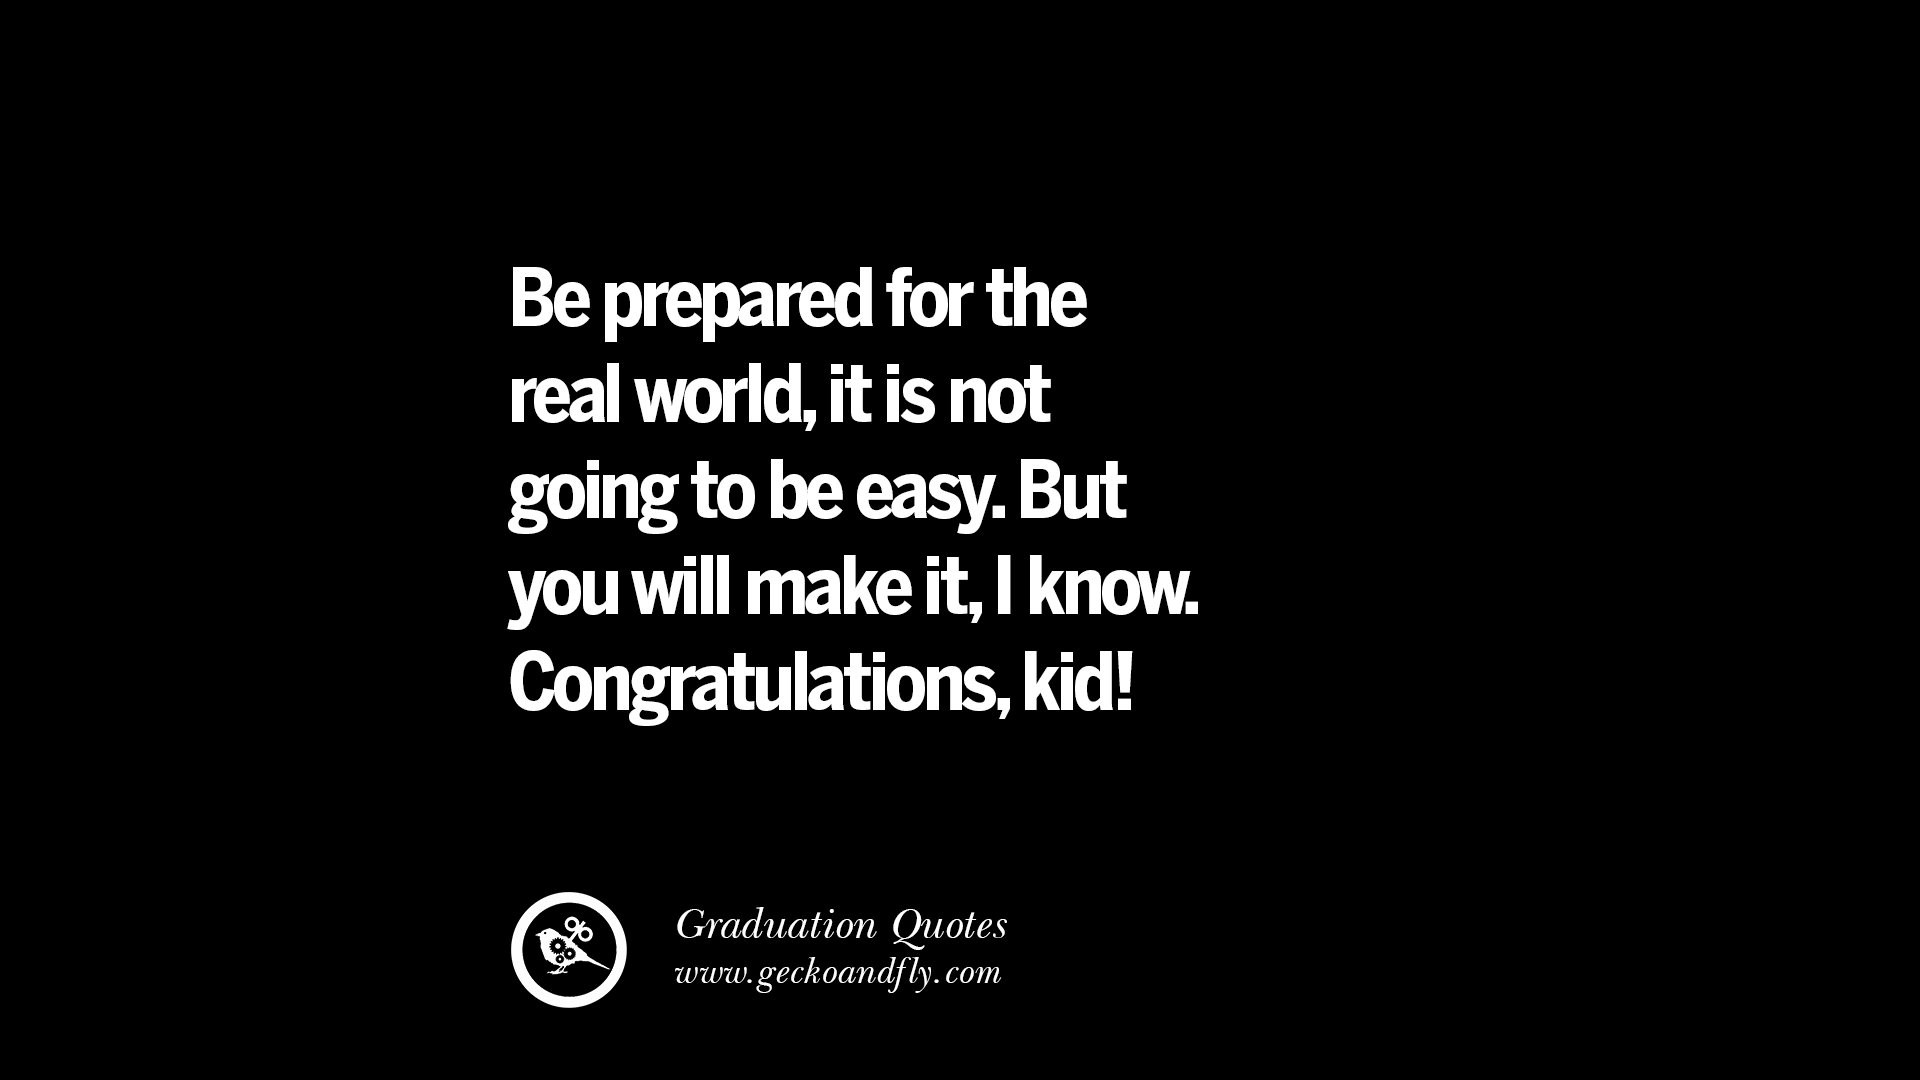 Inspirational Quotes For College Graduation  30 Empowering Graduation Quotes For University College